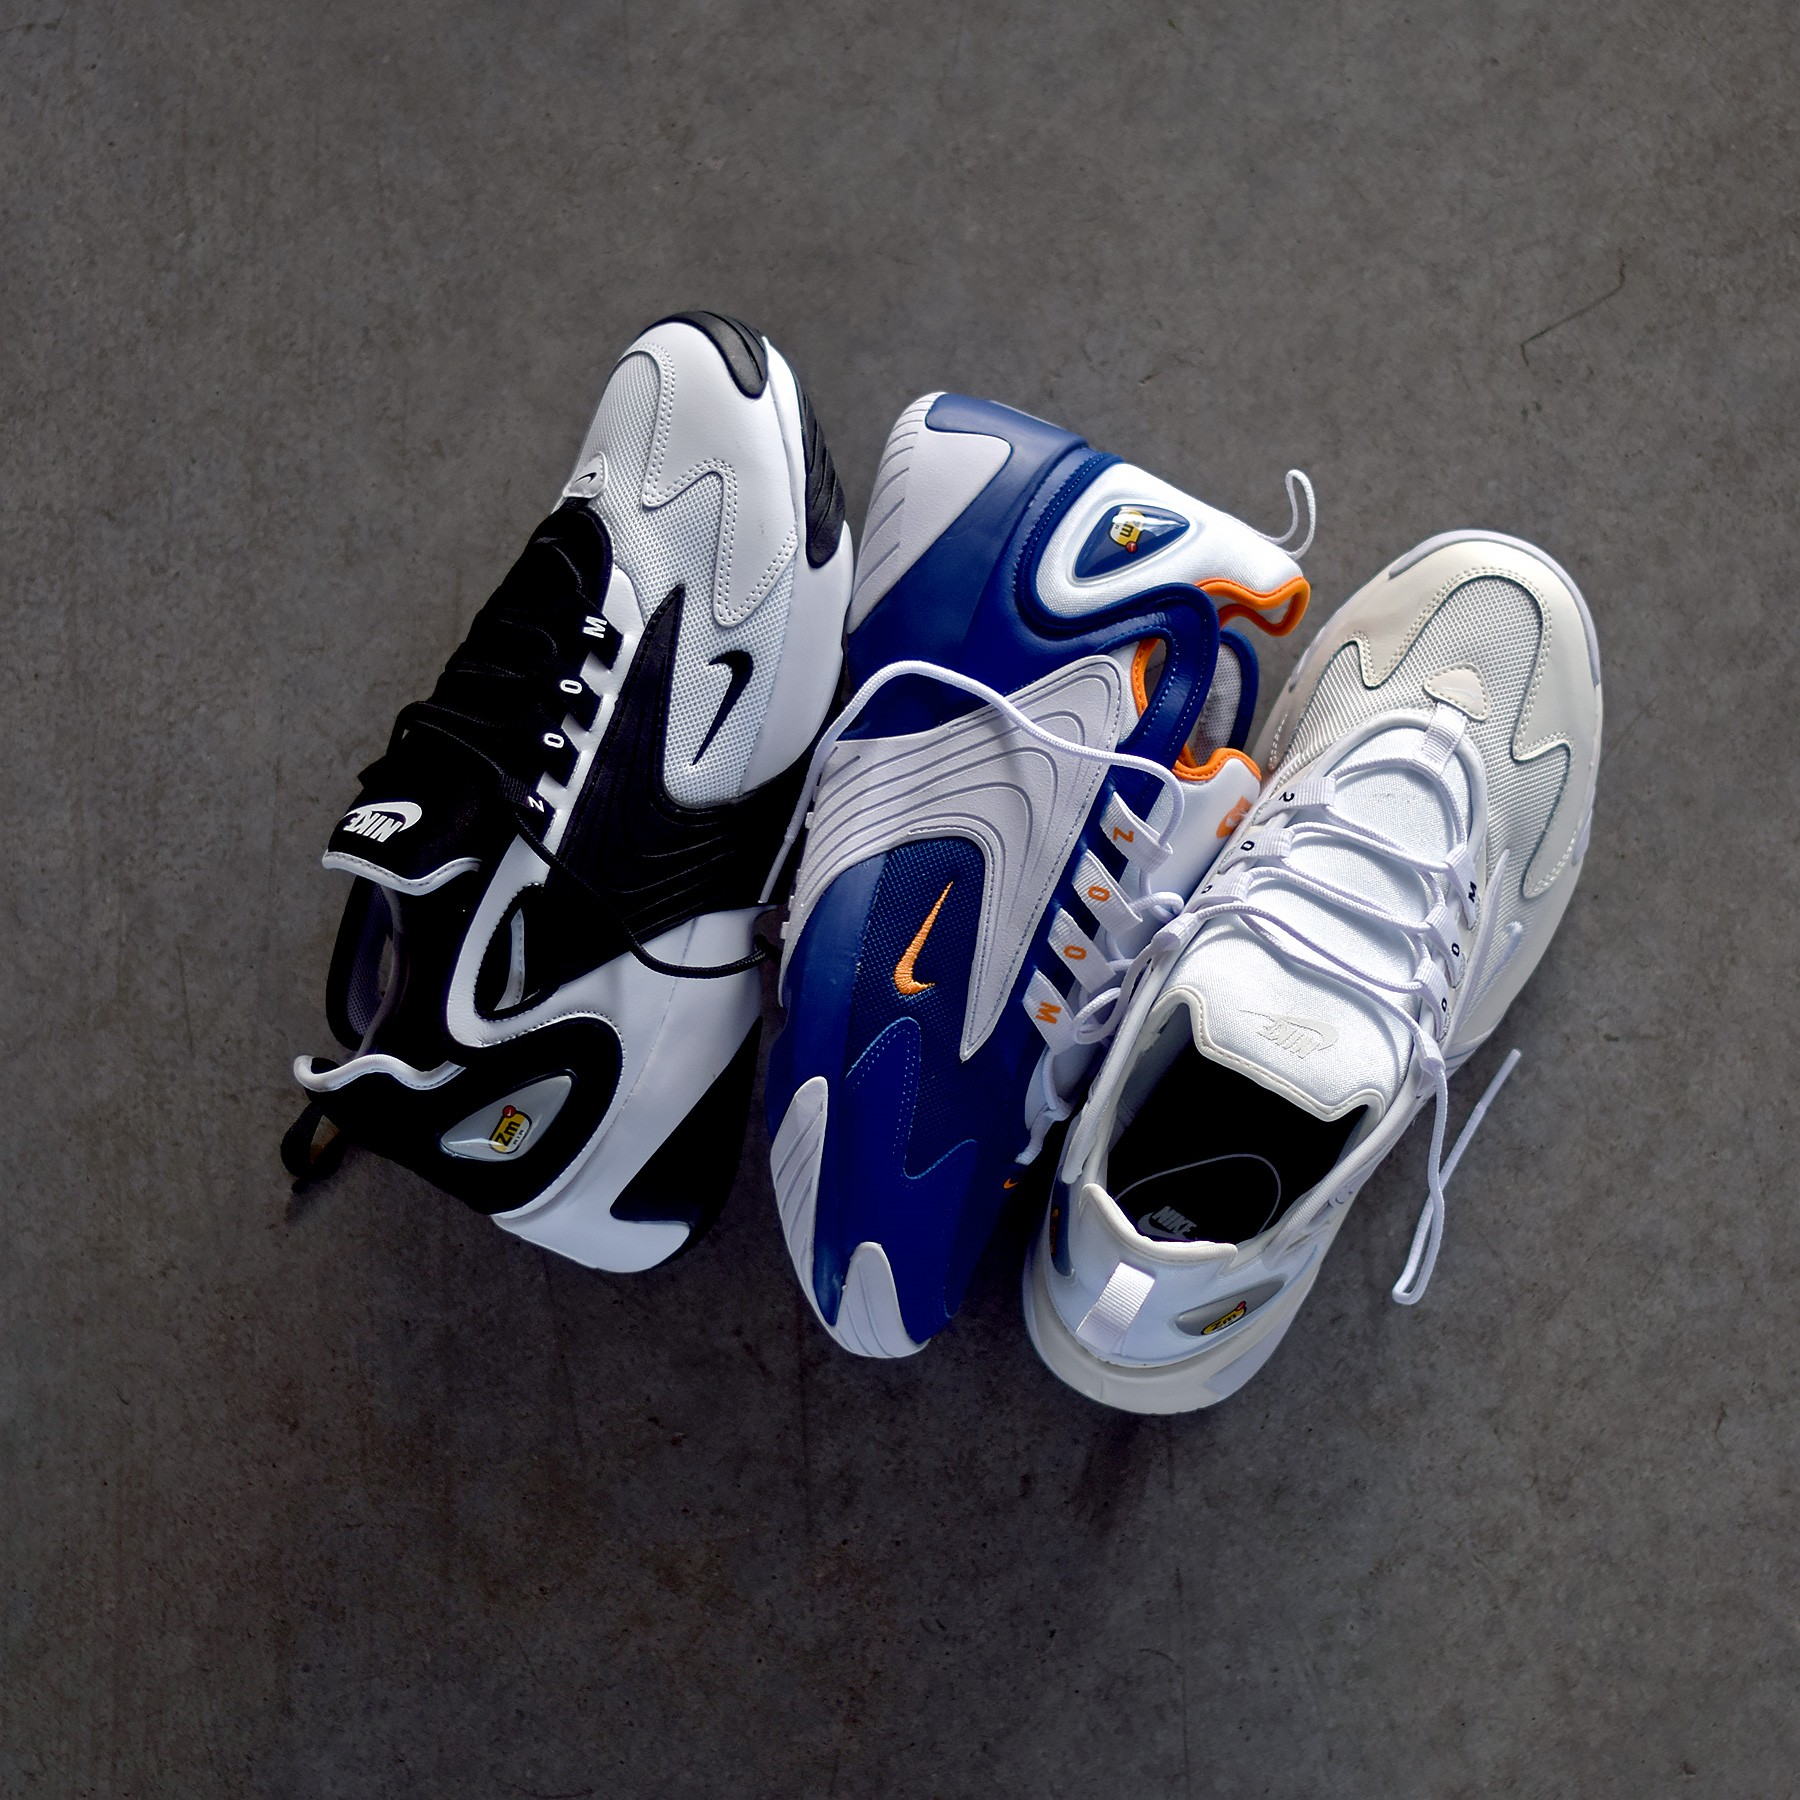 quality outlet for sale buying cheap Nike Zoom 2K